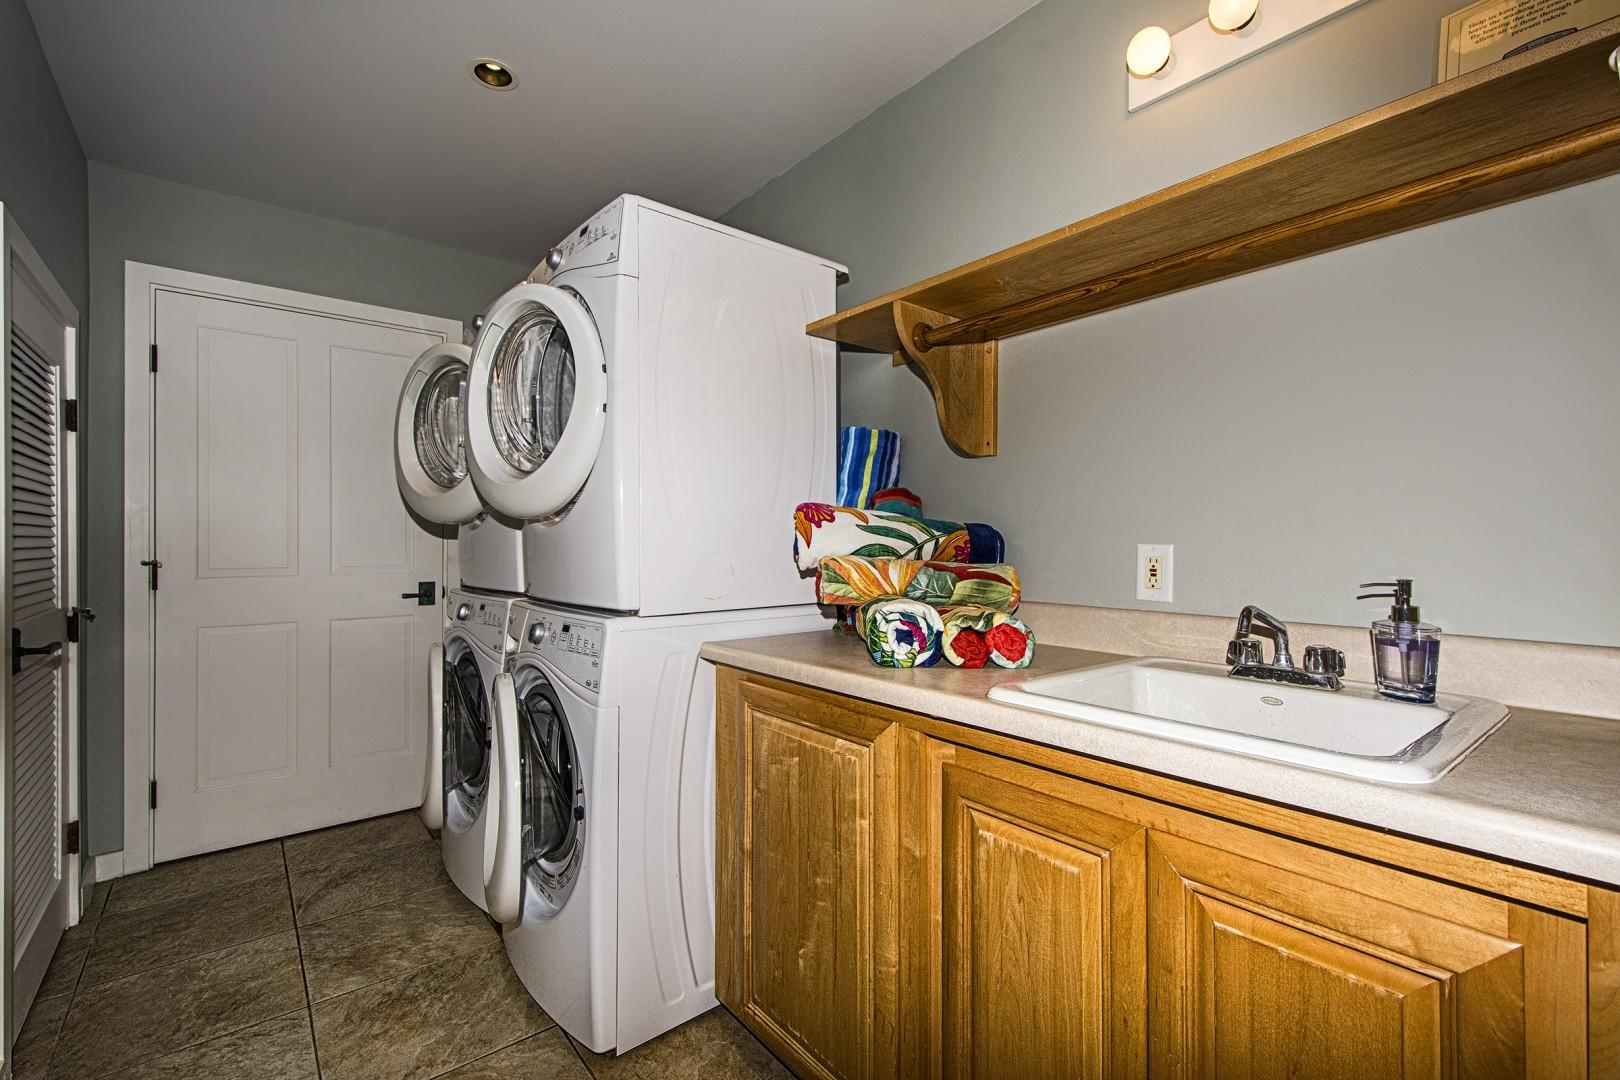 Laundry room equipped with 2 washer dyers